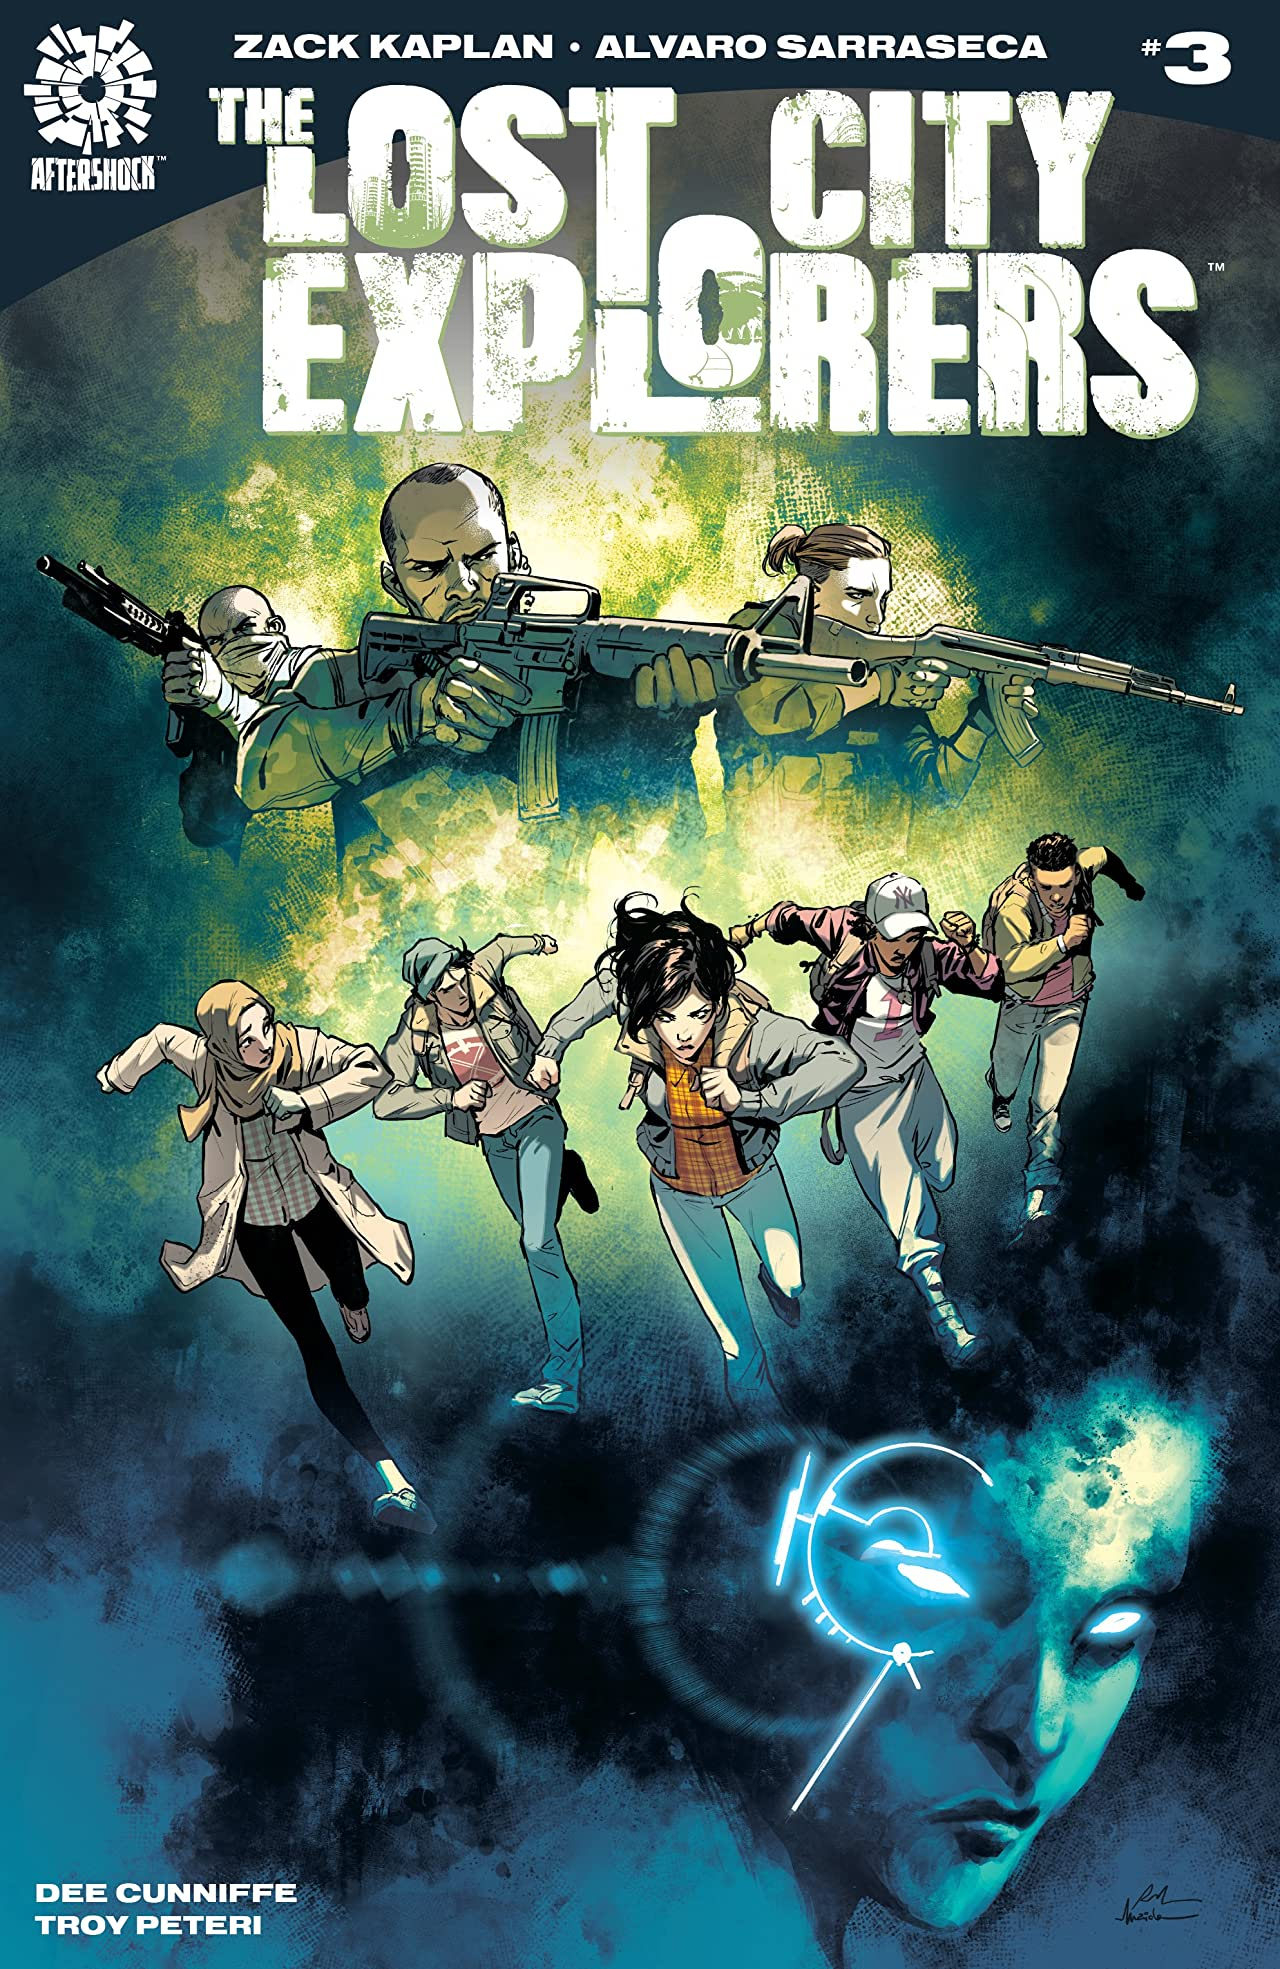 The Lost City Explorers #3